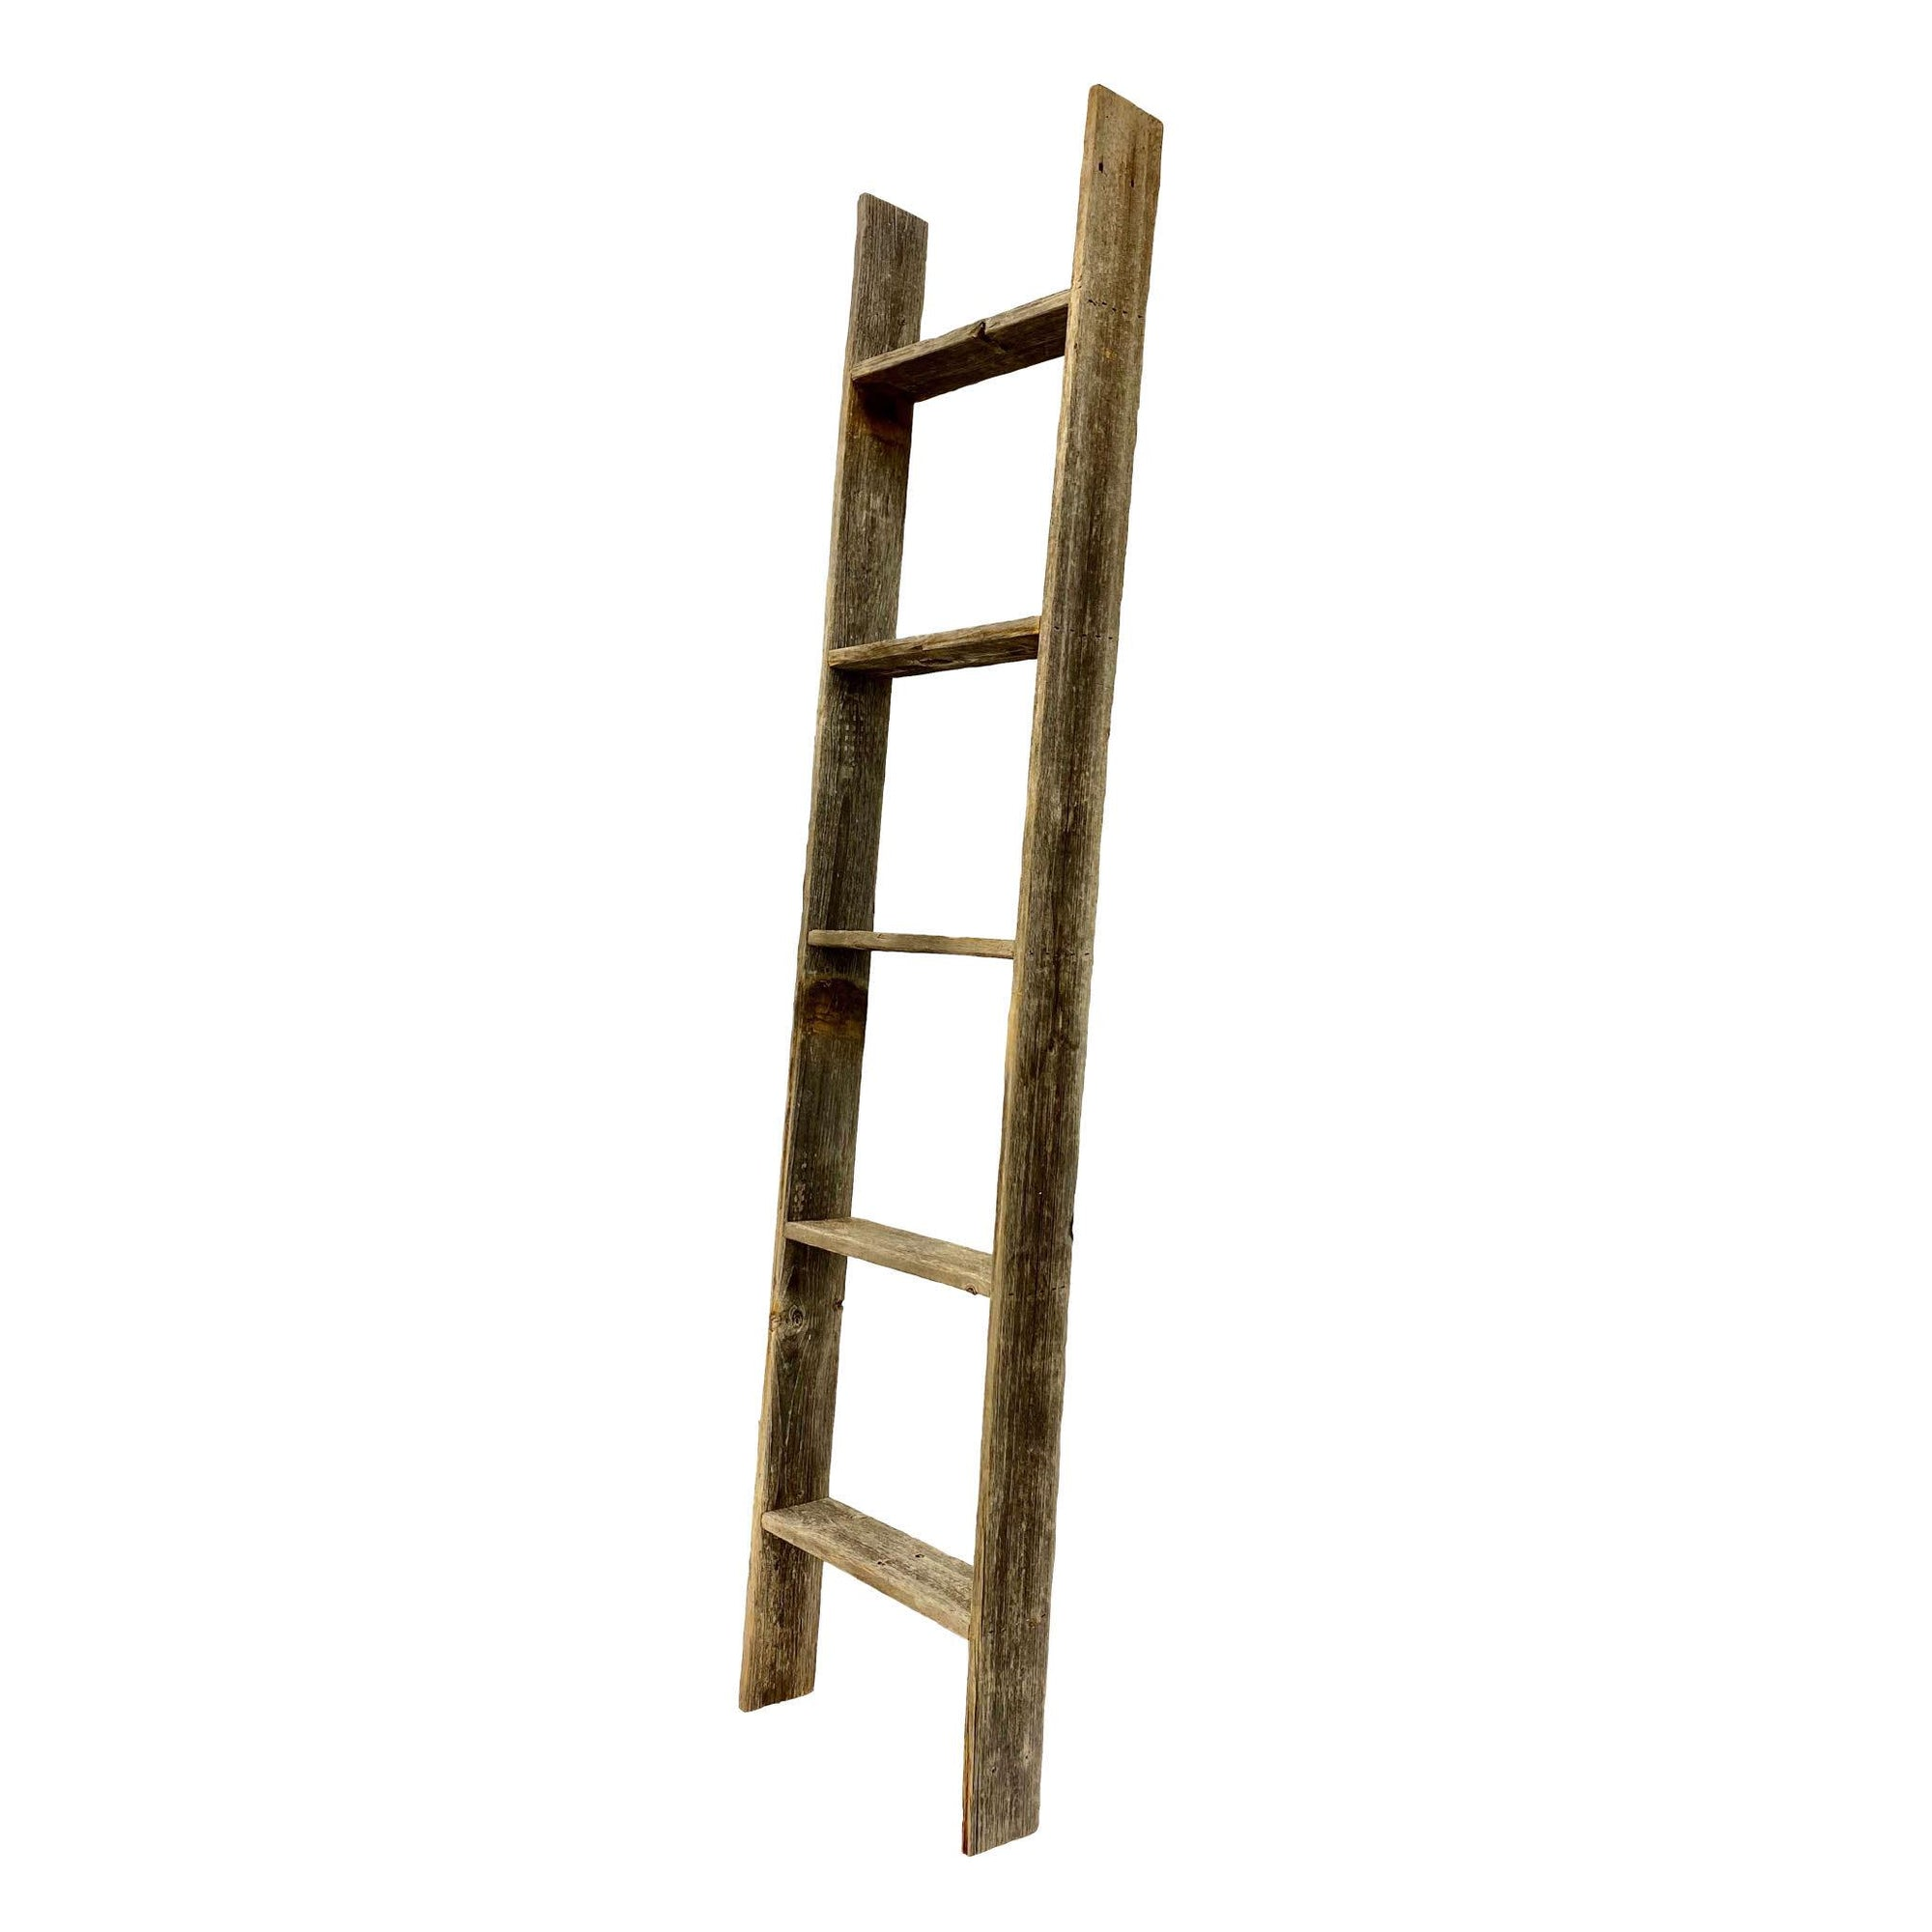 4 Step Rustic Weathered Grey Wood Ladder Shelf